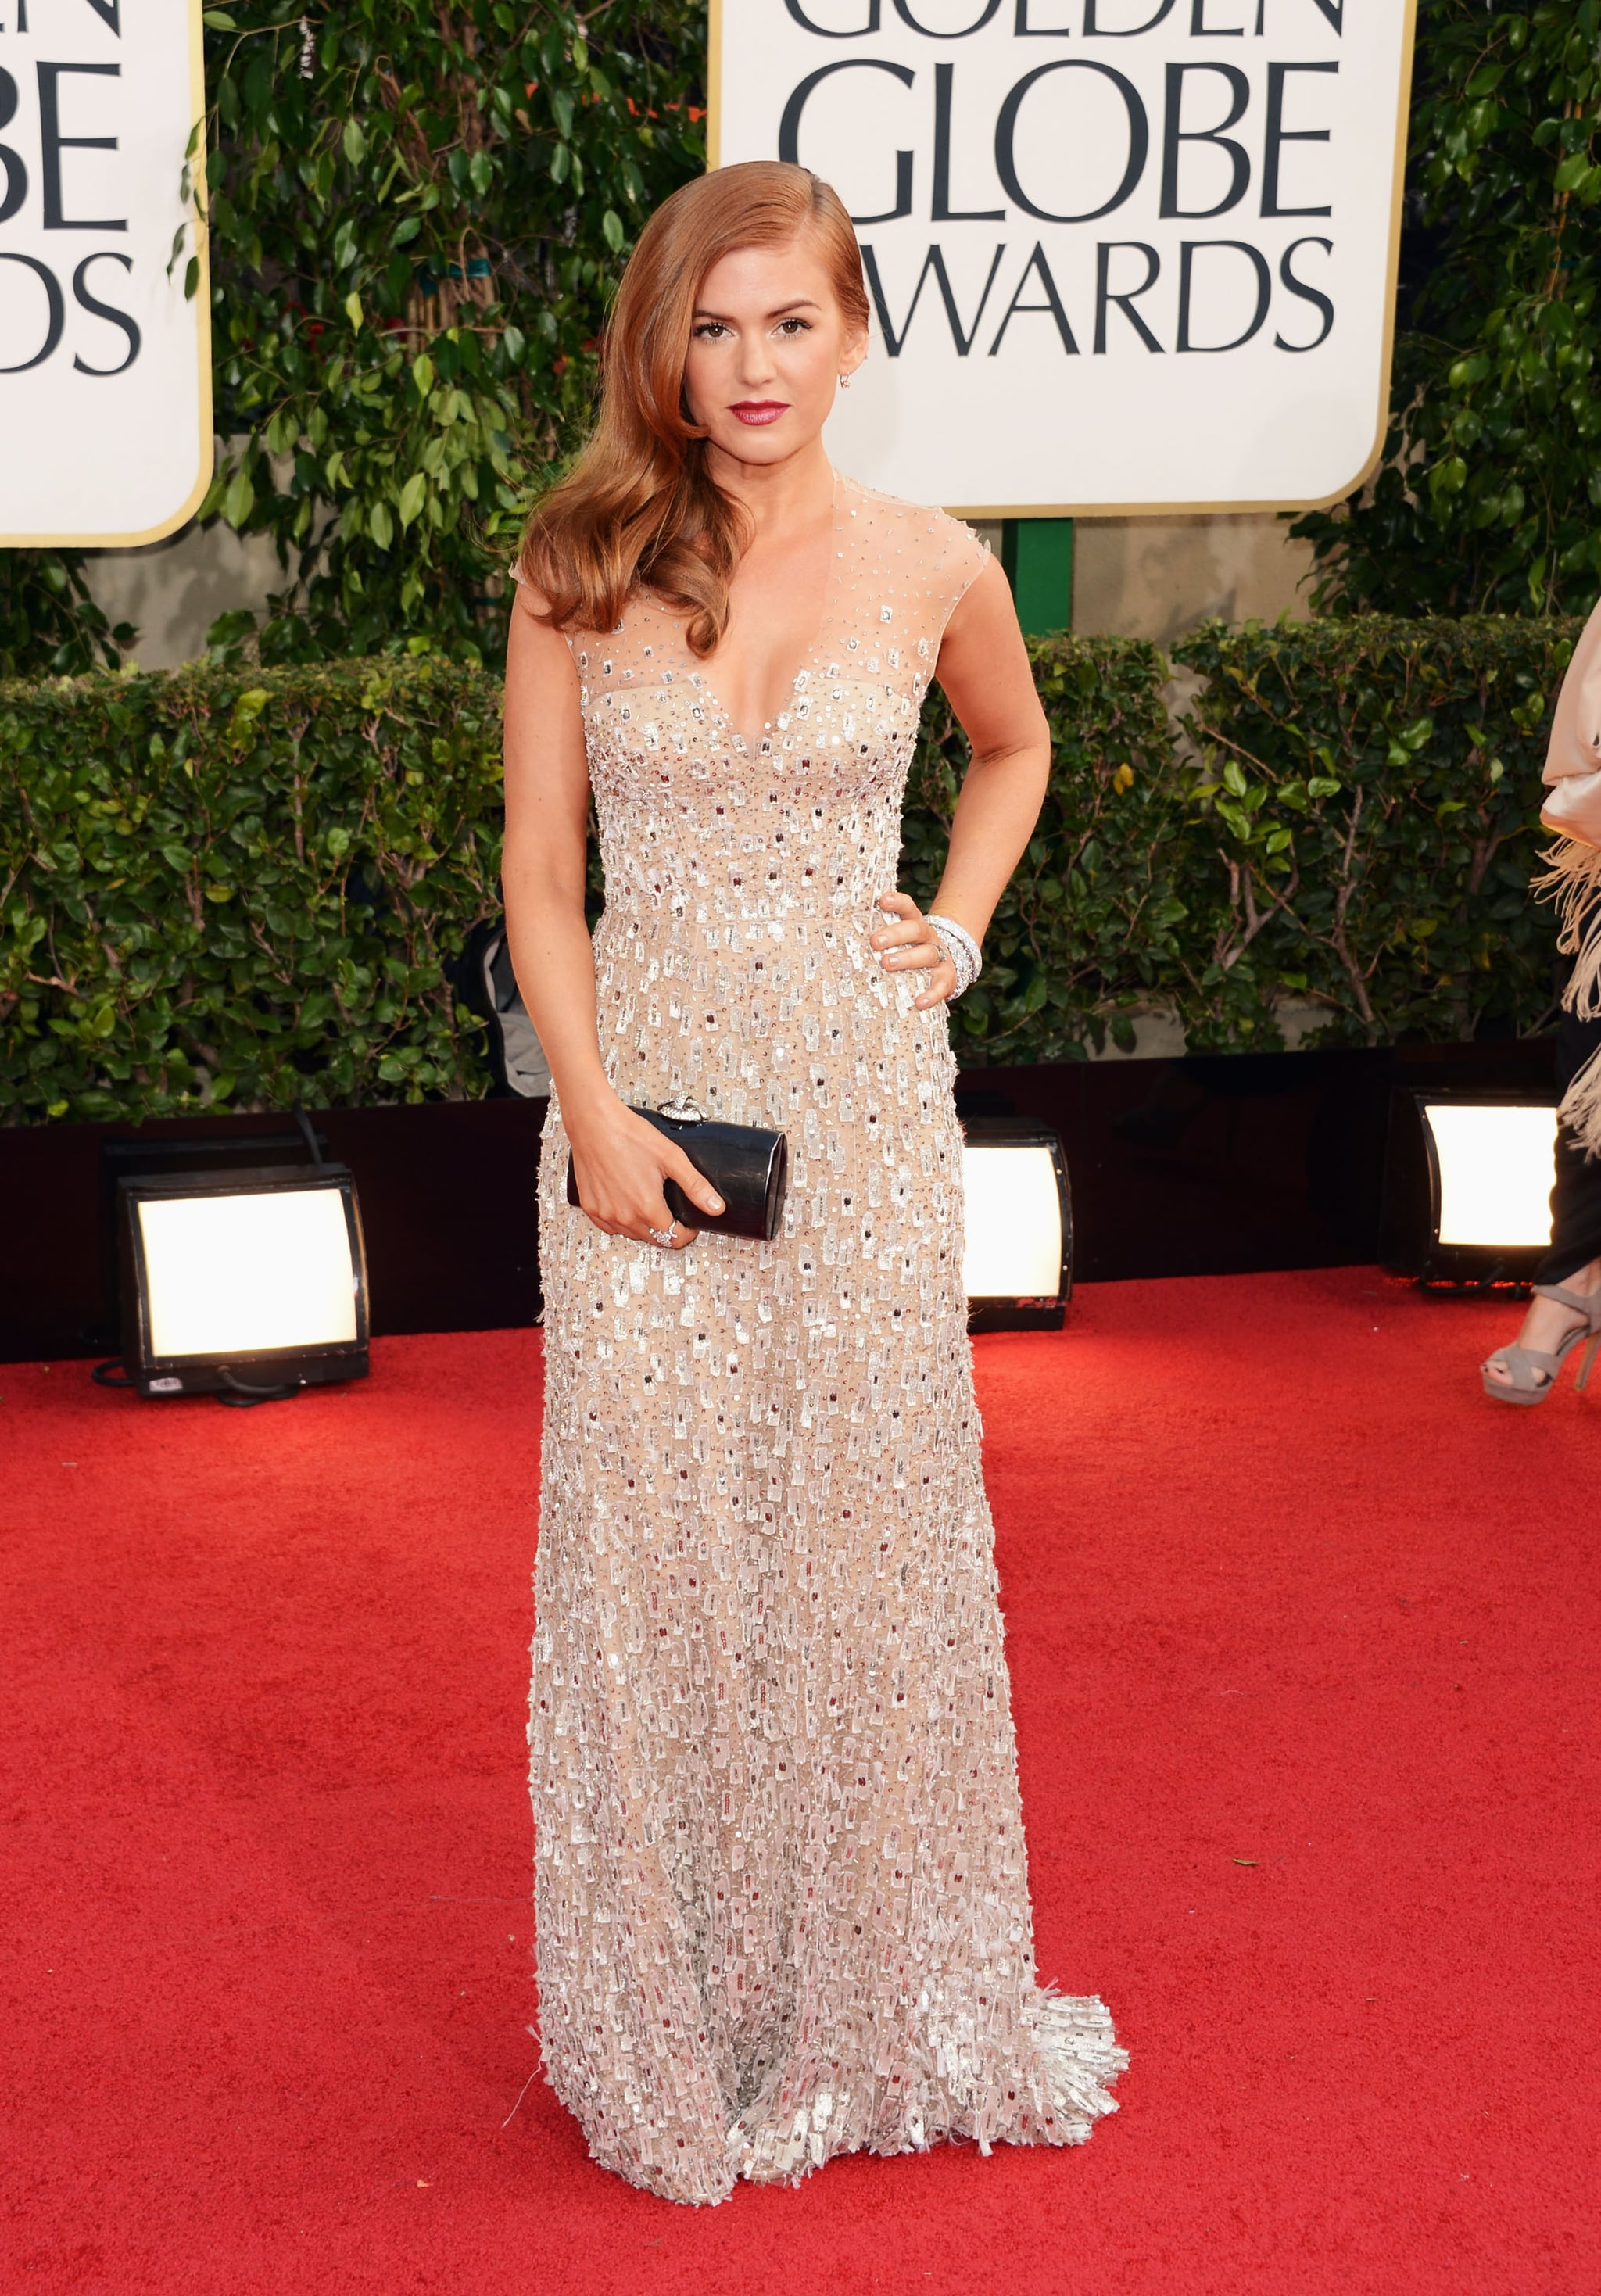 Isla Fisher Nude Photos isla fisher chose a nude, sequined number. | all the ladies